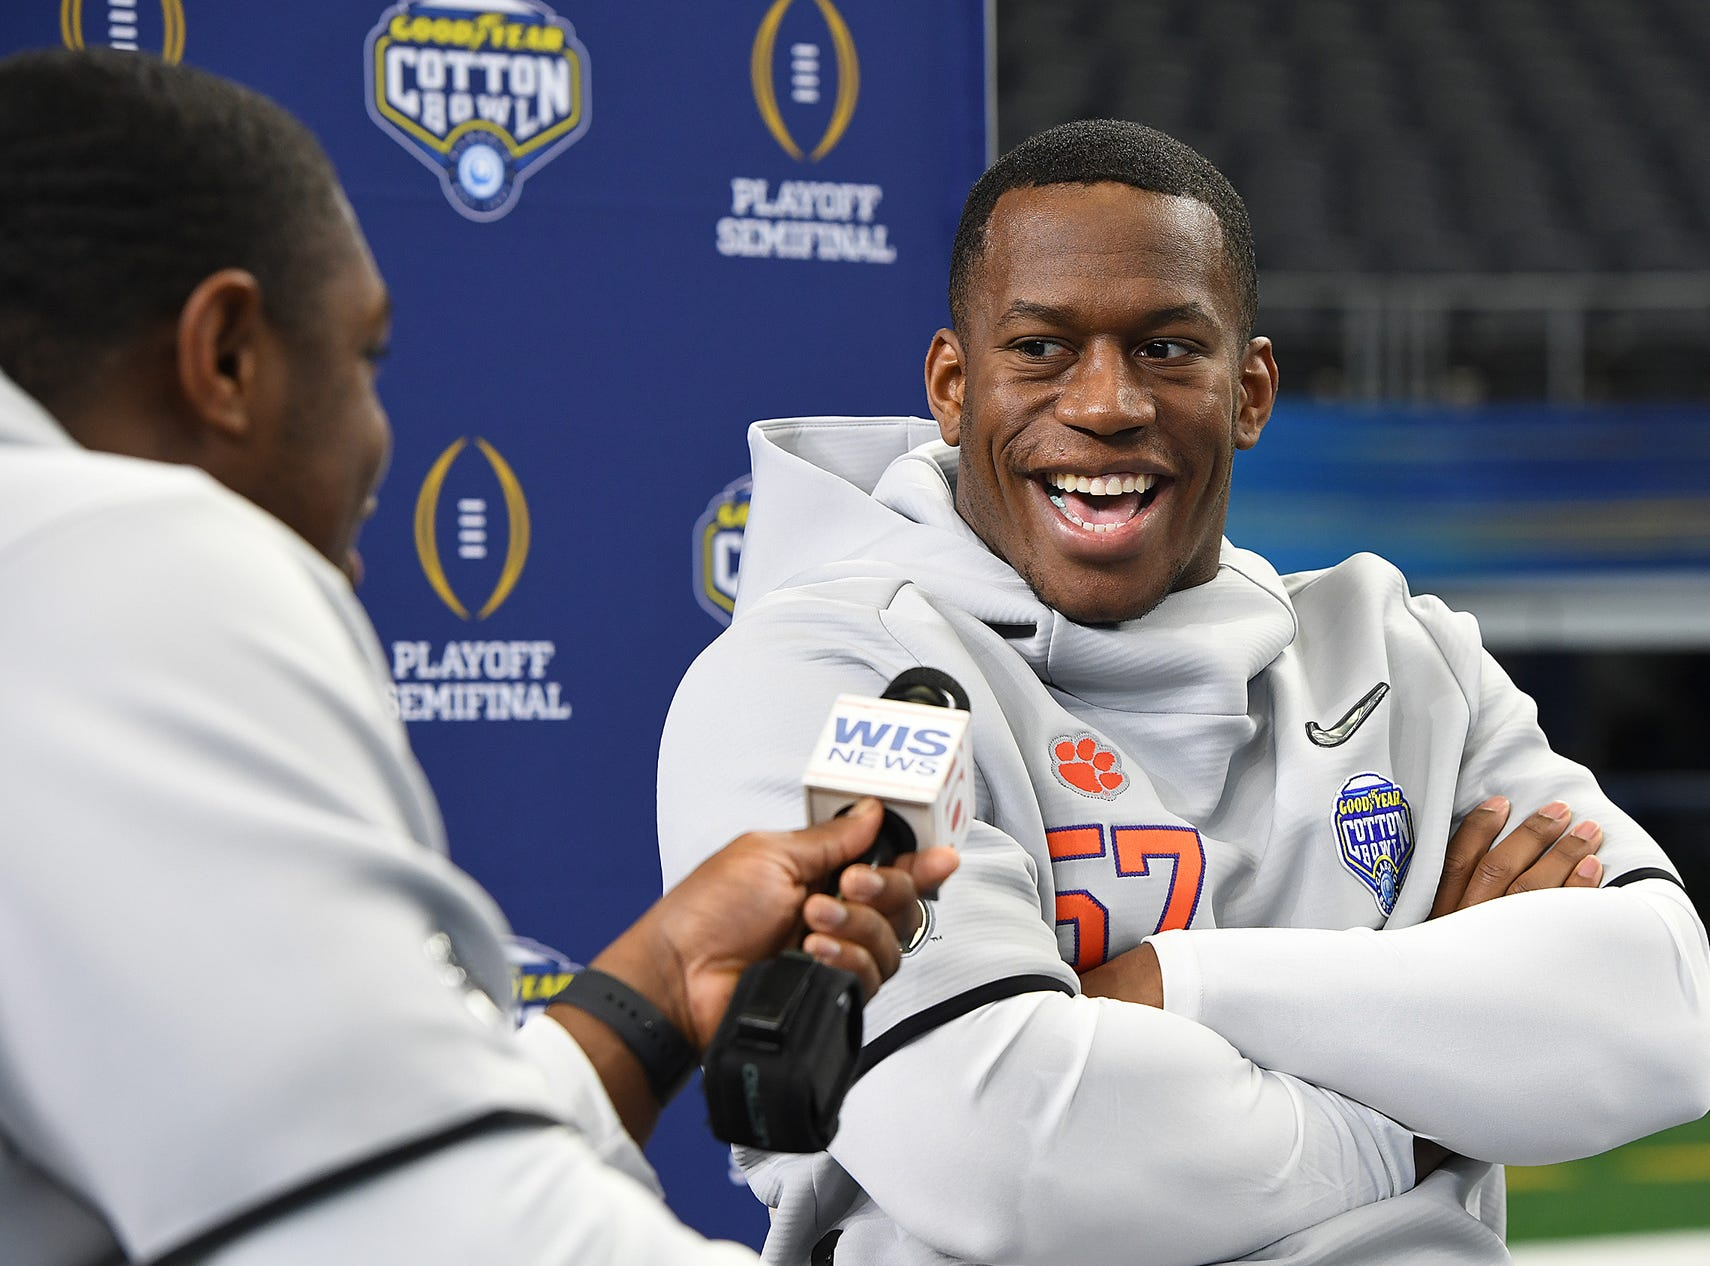 Clemson offensive lineman Tremayne Anchrum, left, interviews linebacker Tre Lamar during the Tigers Cotton Bowl media day at AT&T Stadium in Arlington, TX Thursday, December 27, 2018.